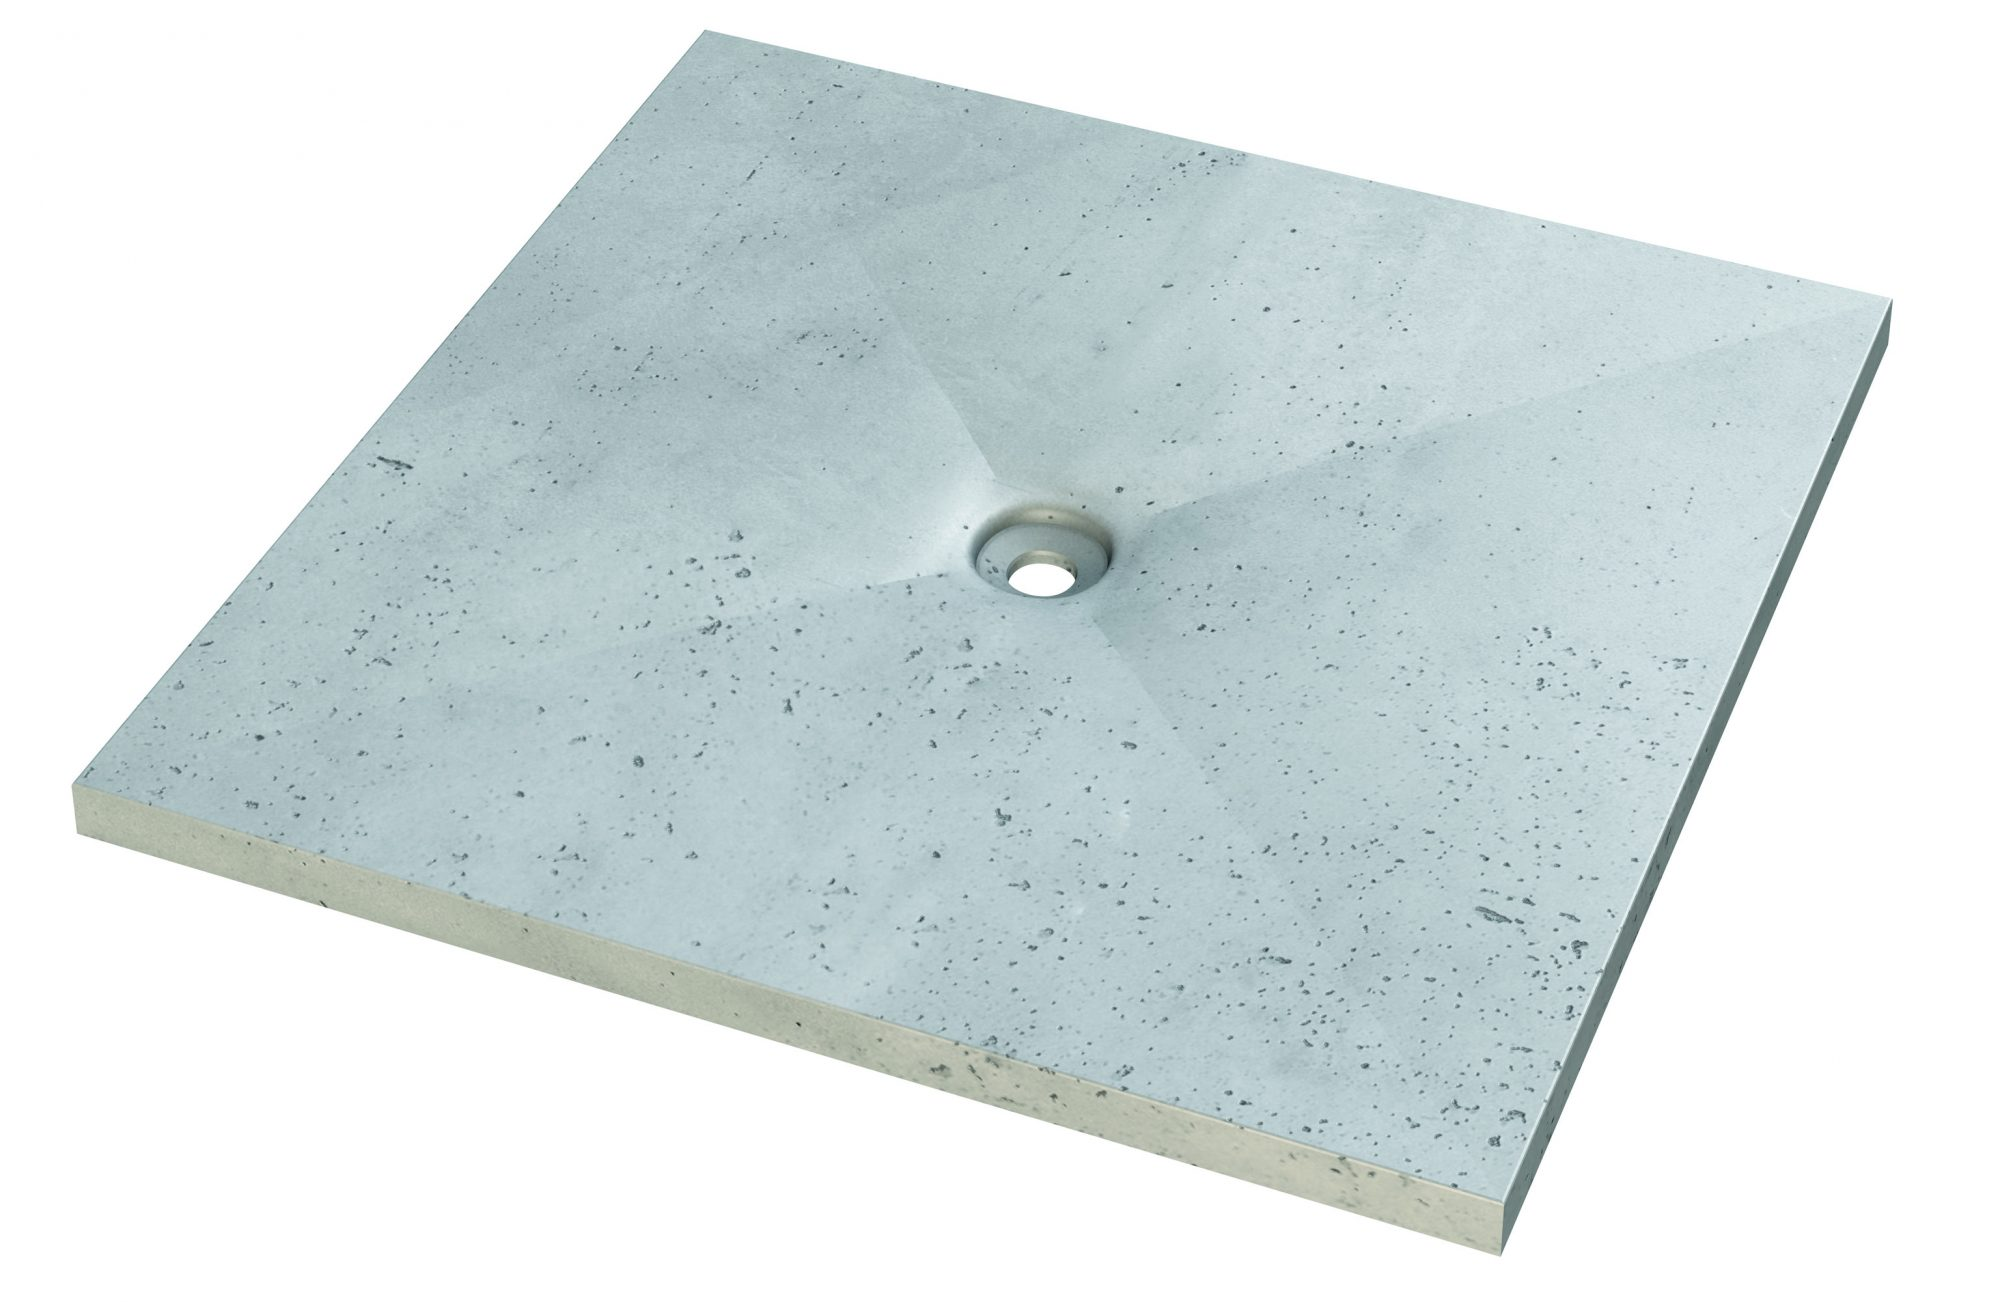 Concrete Shower Tray - Living Concrete